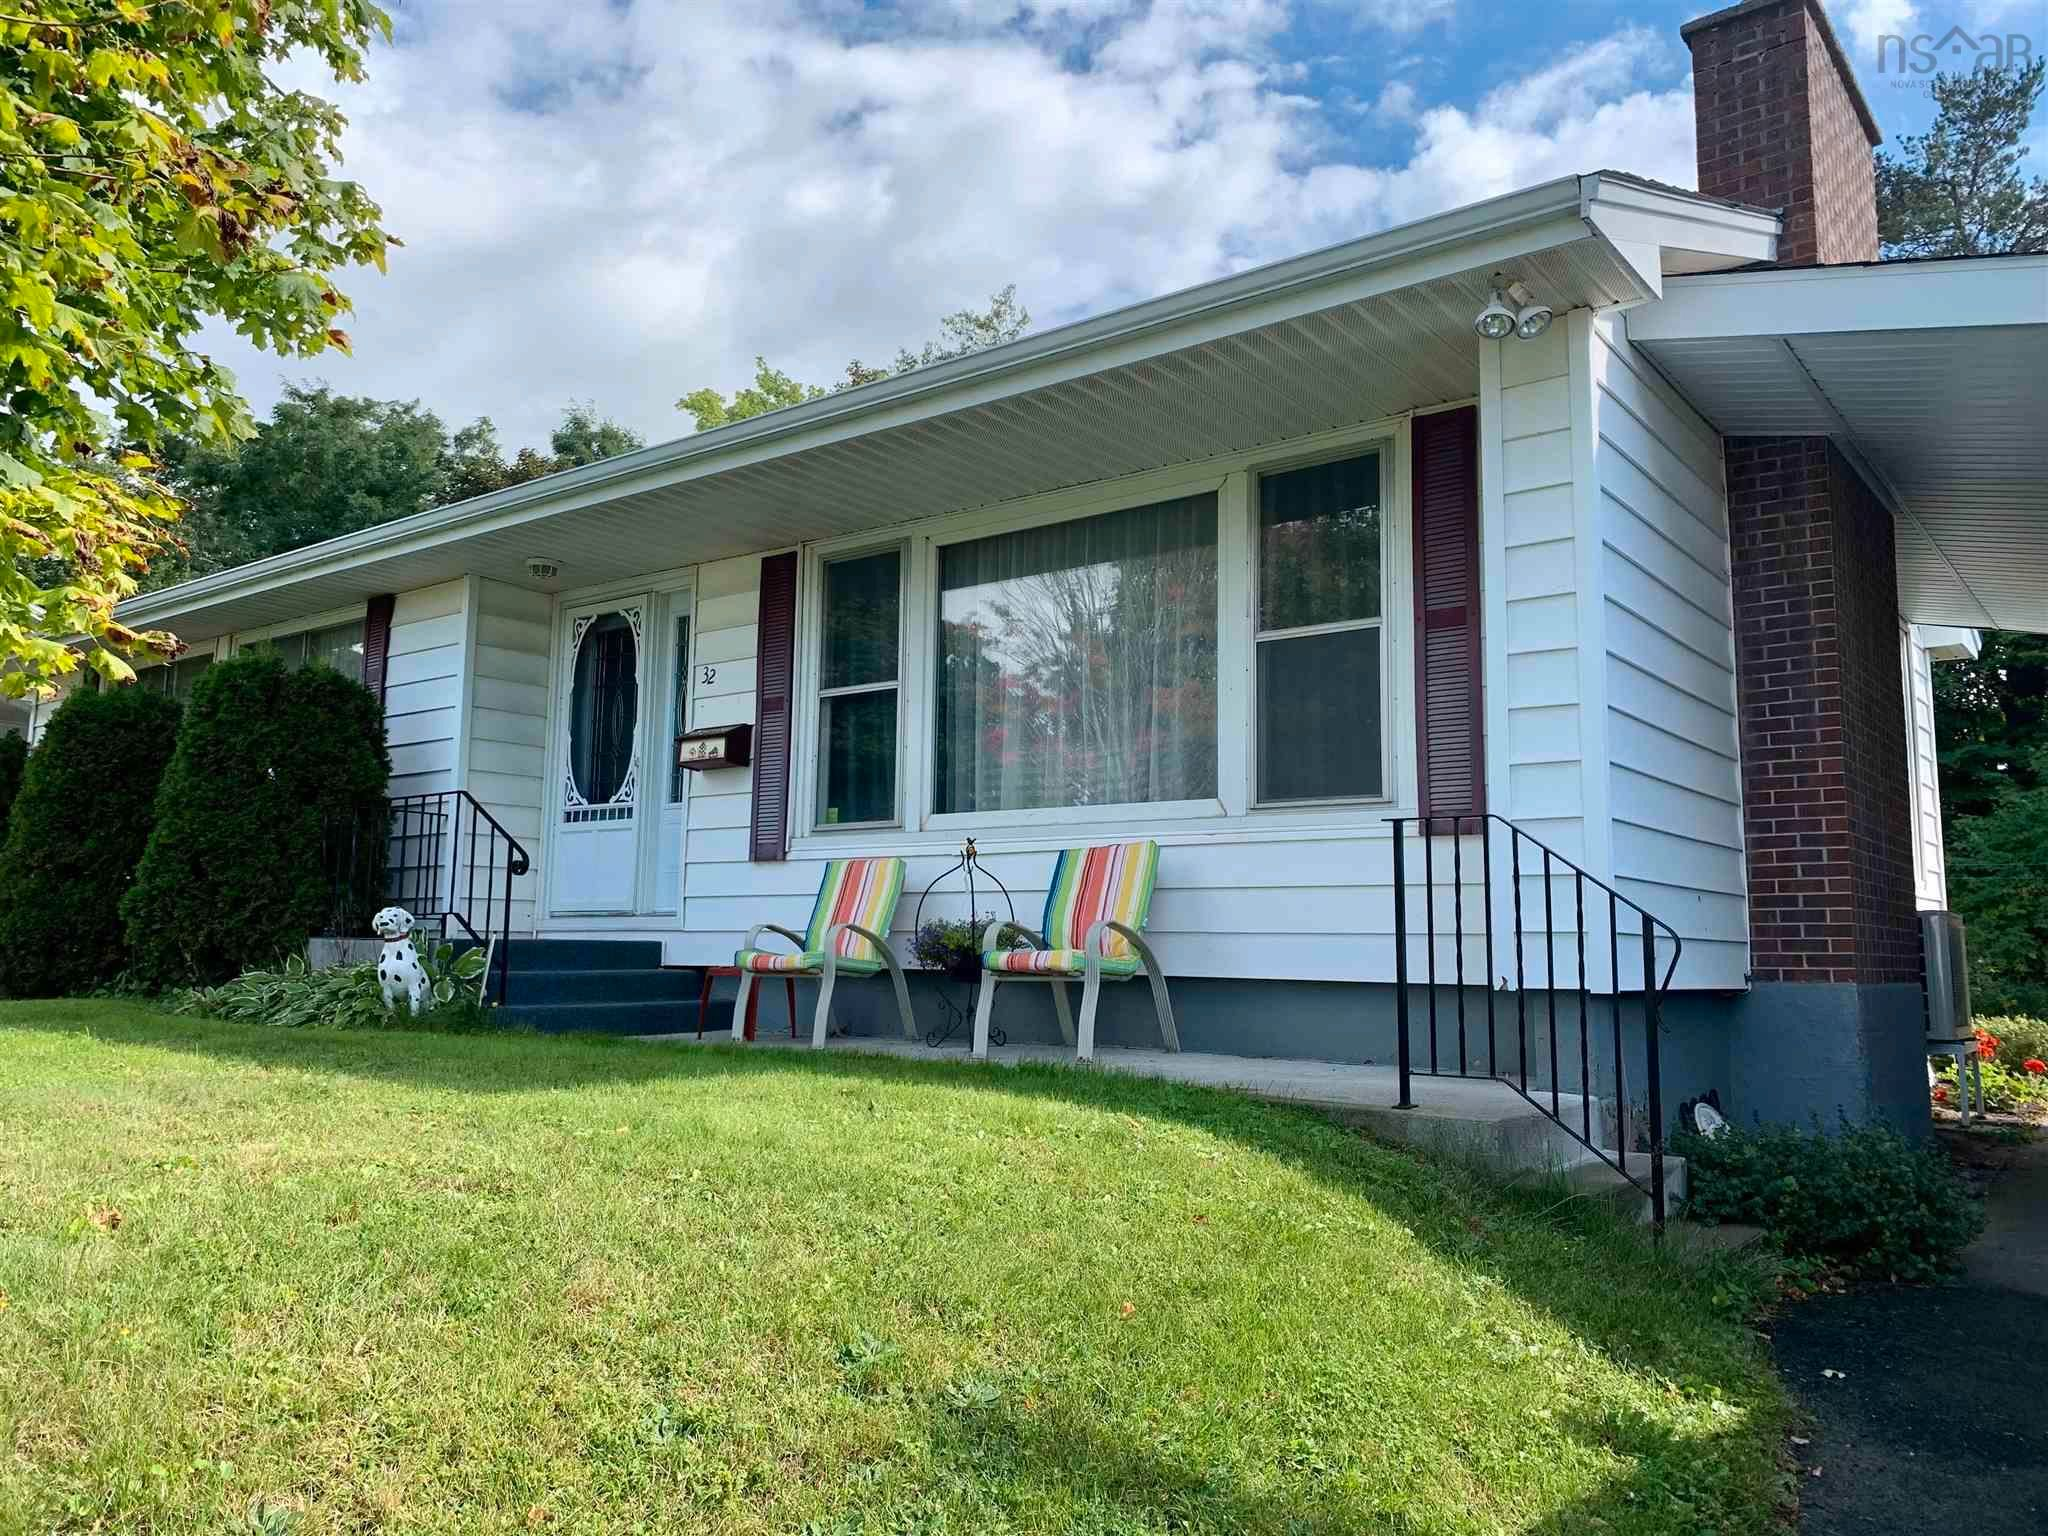 Main Photo: 32 James Street in Kentville: 404-Kings County Residential for sale (Annapolis Valley)  : MLS®# 202124094